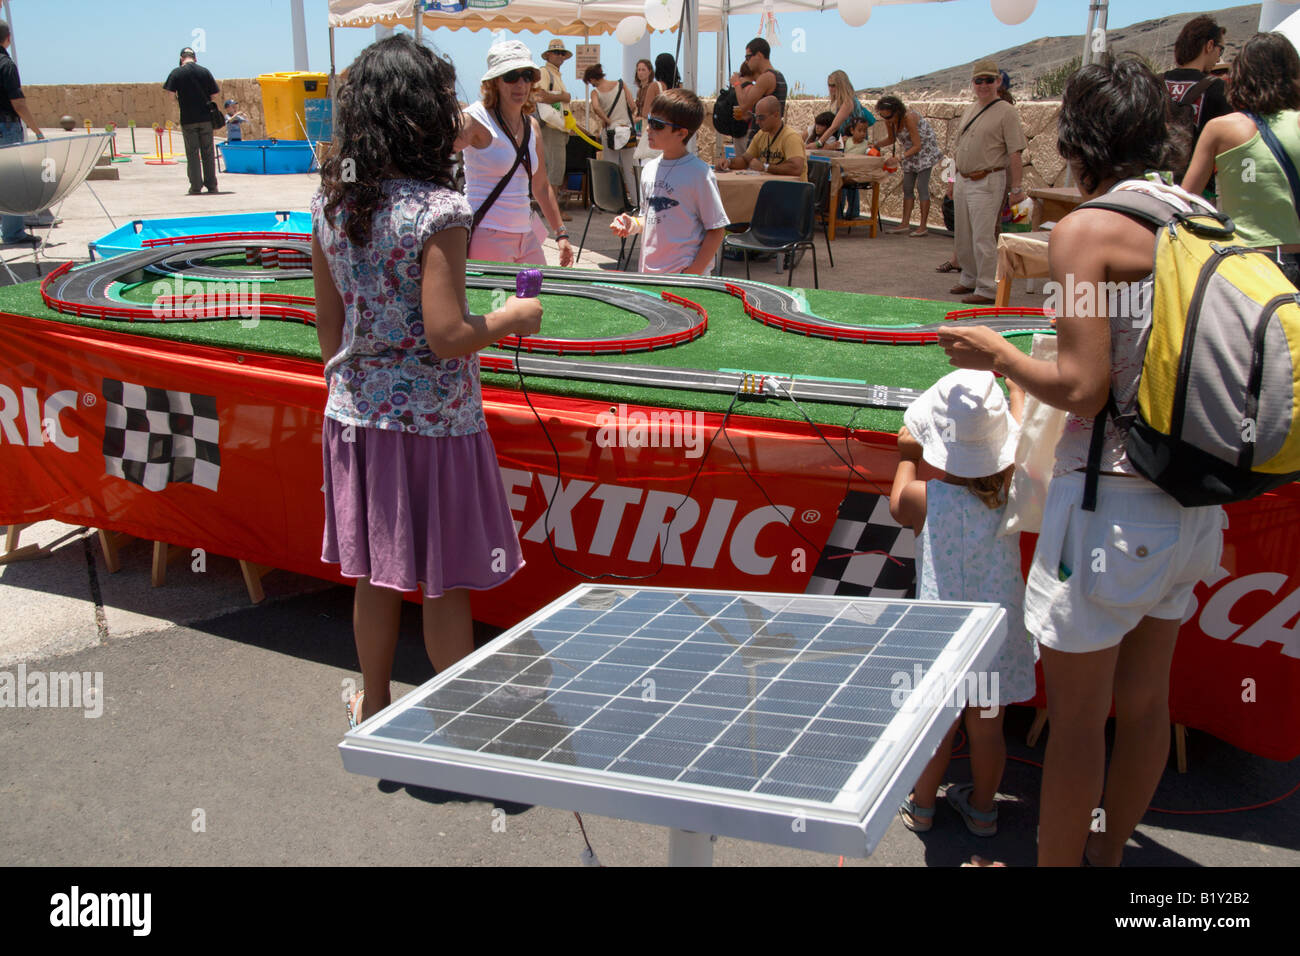 Children playing with solar powered Scalextric set at the Eolica festival of renewable energy on Tenerife in June - Stock Image